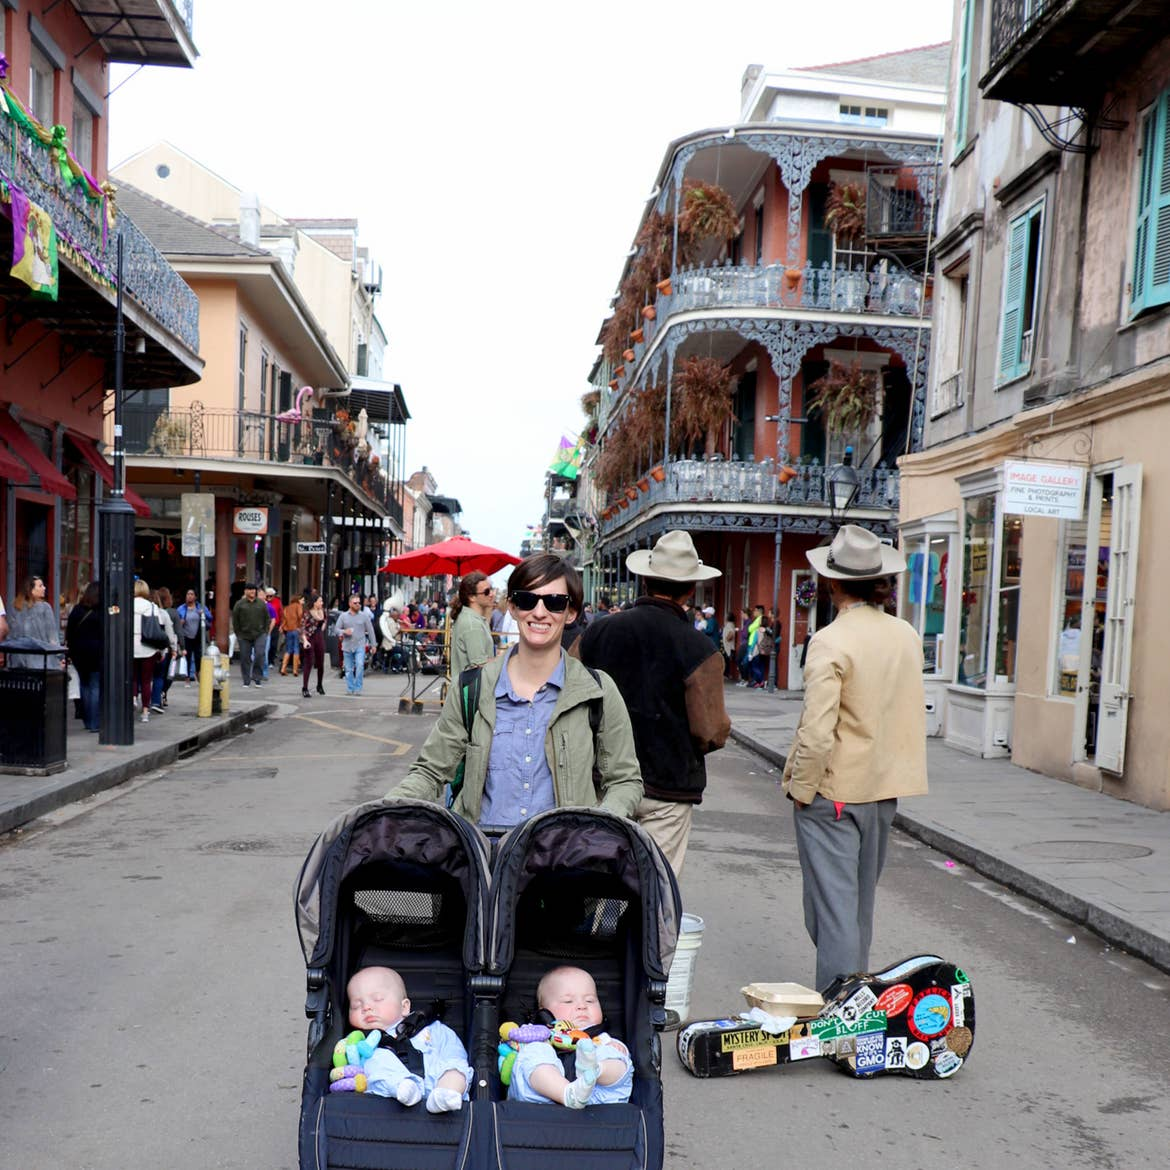 Featured Contributor, Catherine Karas's wife, stands in the middle of the French Quarter with their twin boys in a stroller.